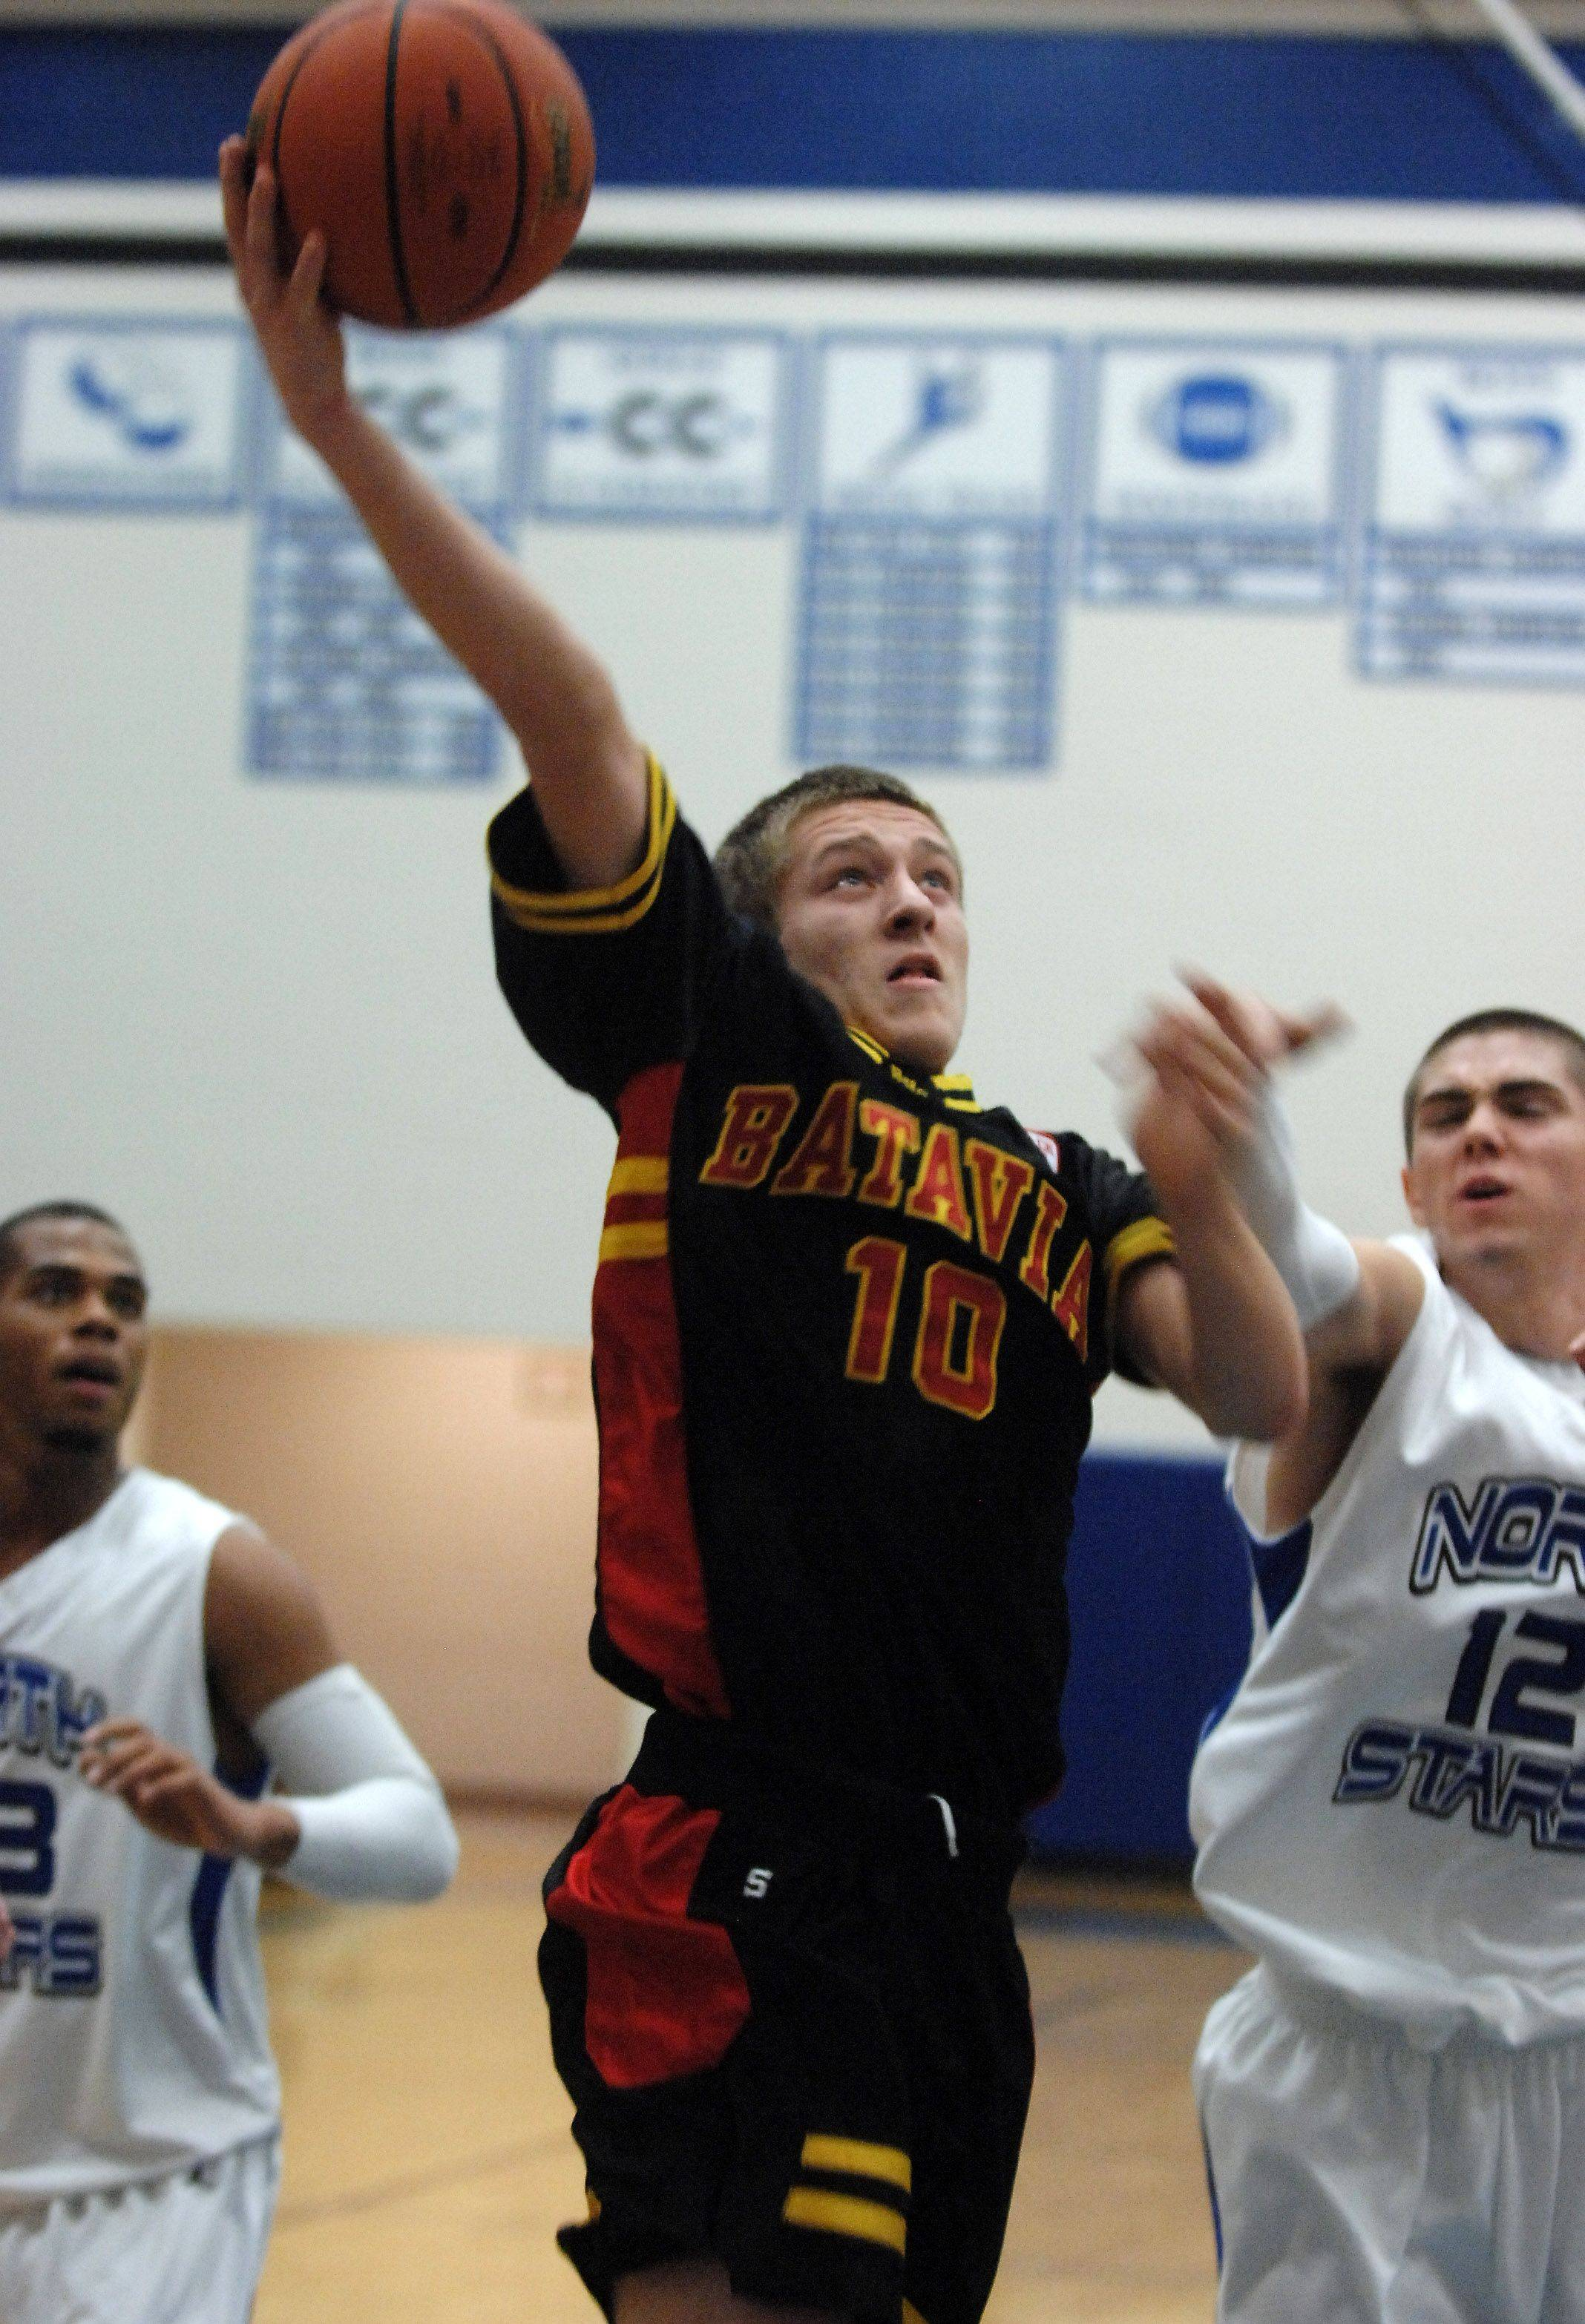 Batavia's Mike Rueffer drives and scores in front of St. Charles North's Quinten Payne.